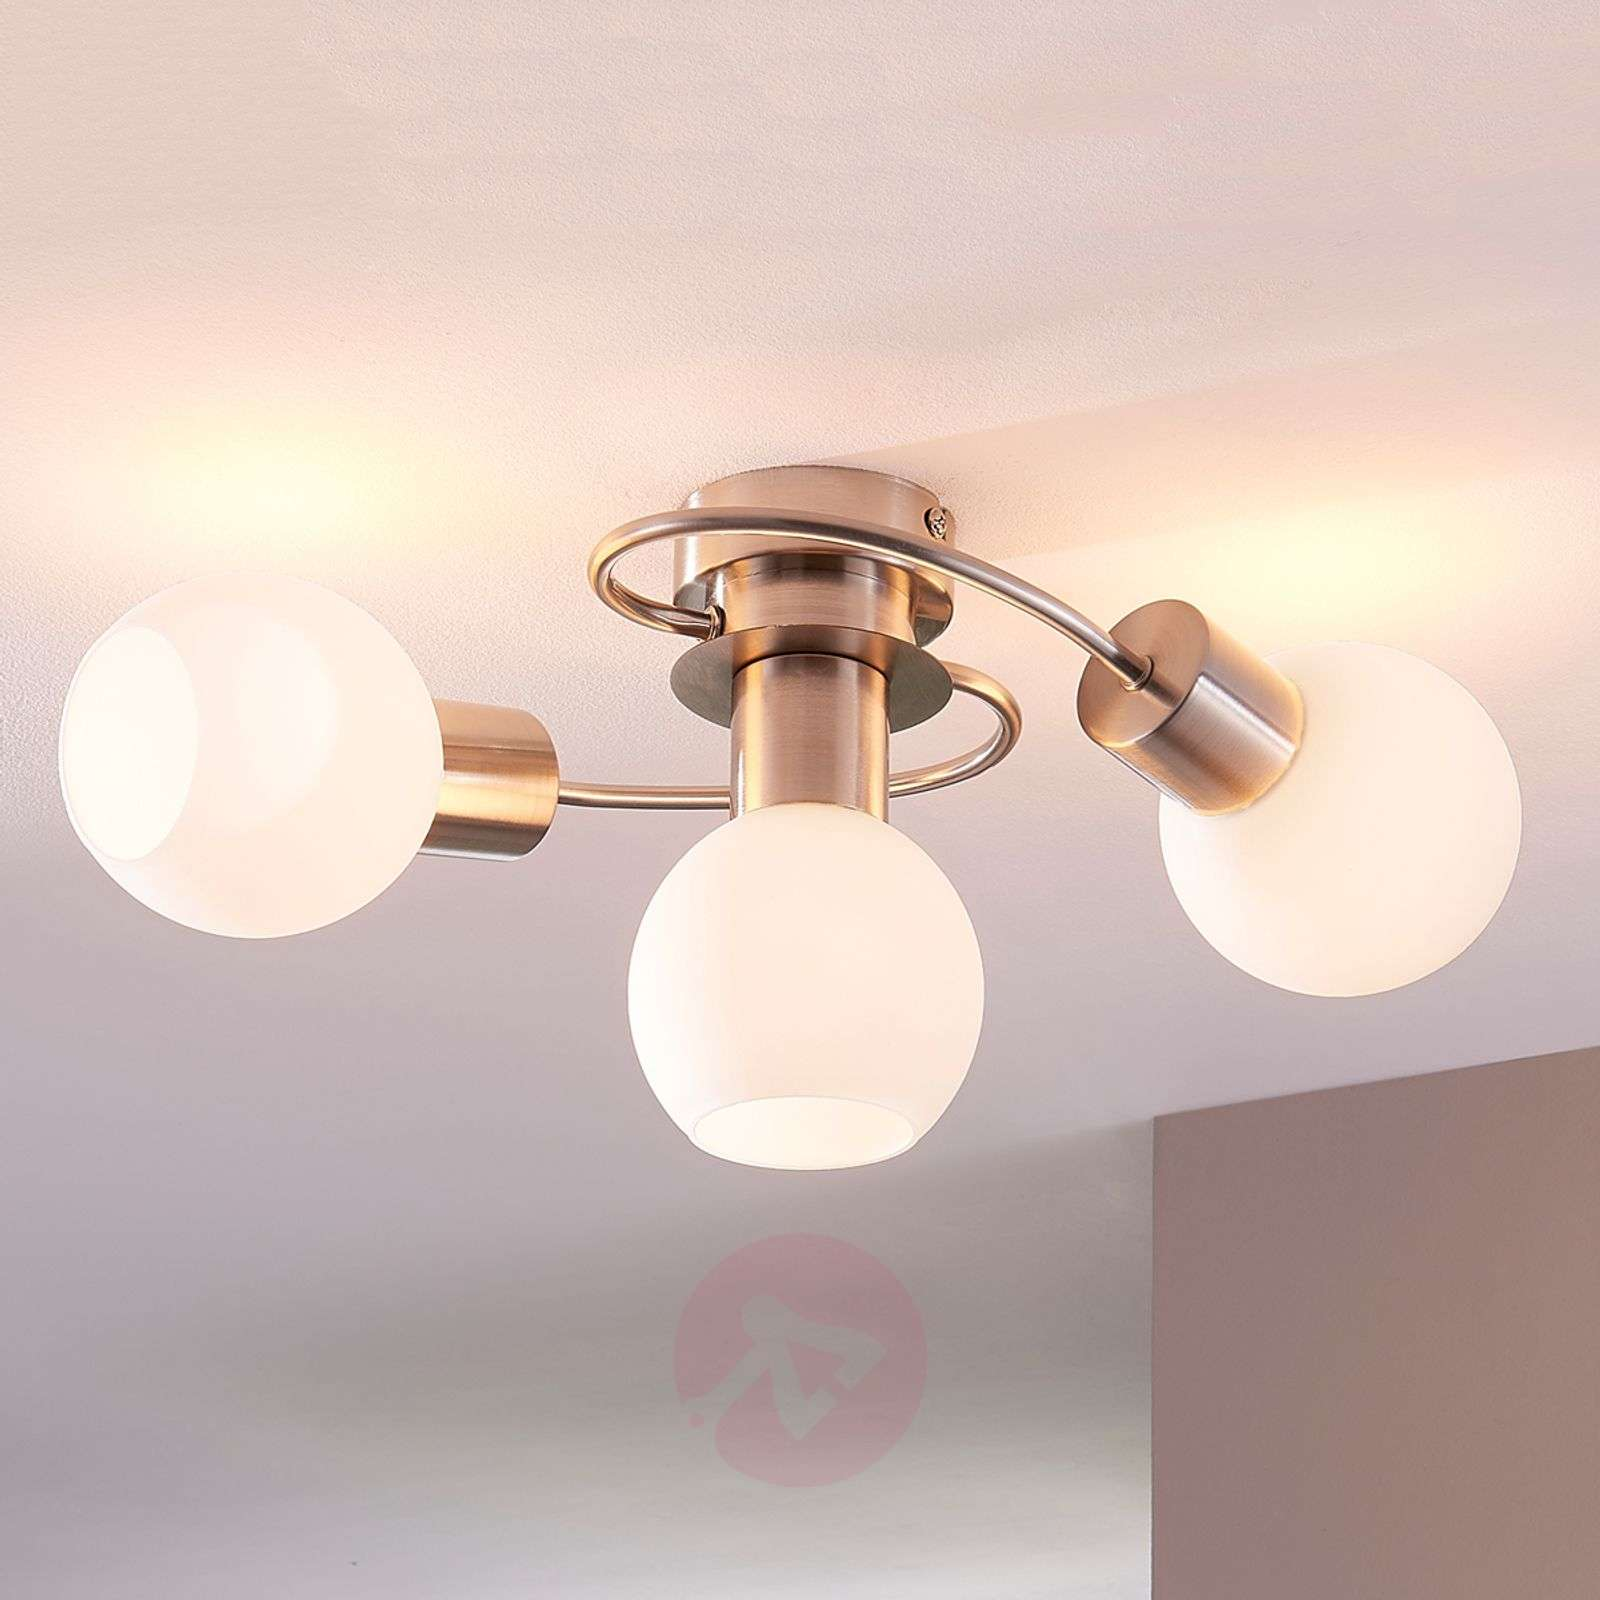 3-bulb Ciala LED ceiling light-9621008-03